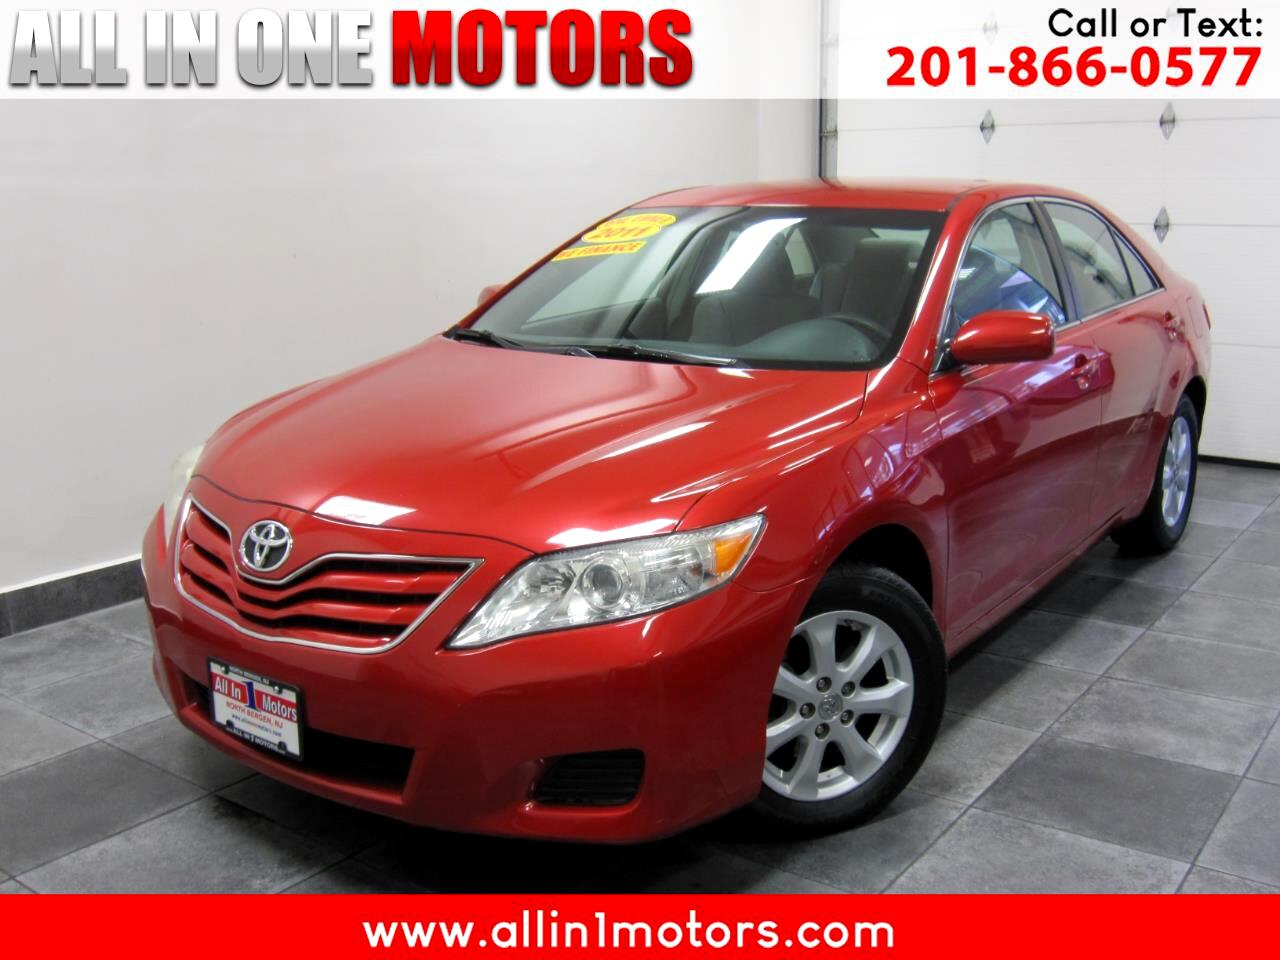 2011 Toyota Camry 4dr Sdn V6 Auto LE (Natl)